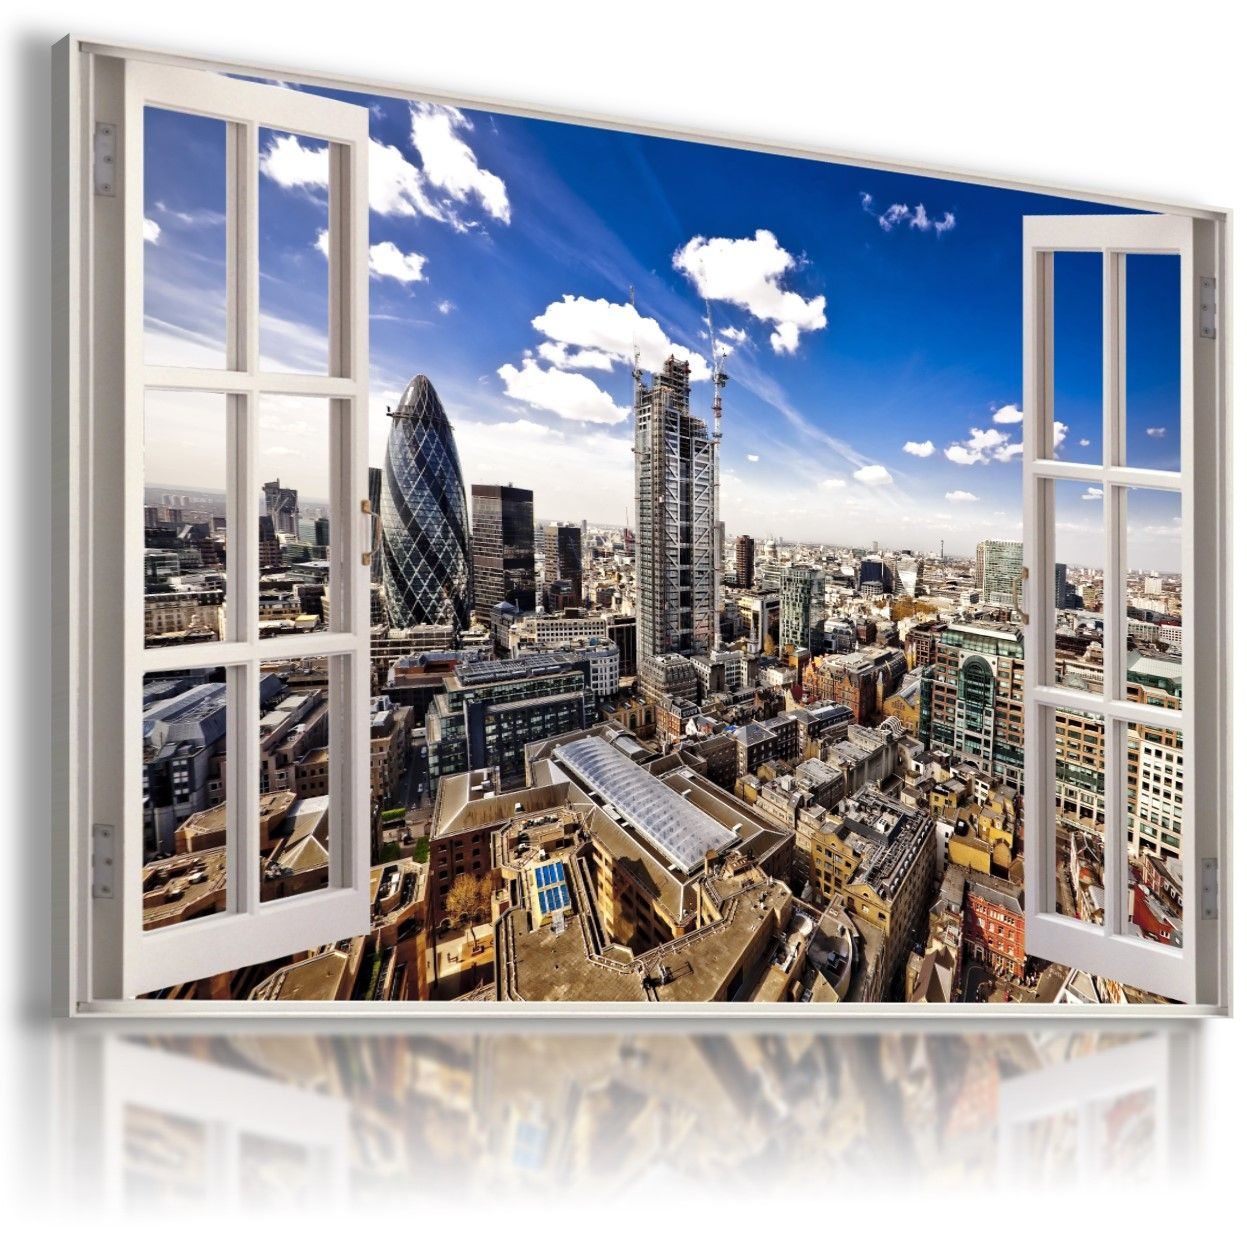 ITALY ROME CITY In 3D Window View Canvas Wall Art Picture Large W191 MATAGA .